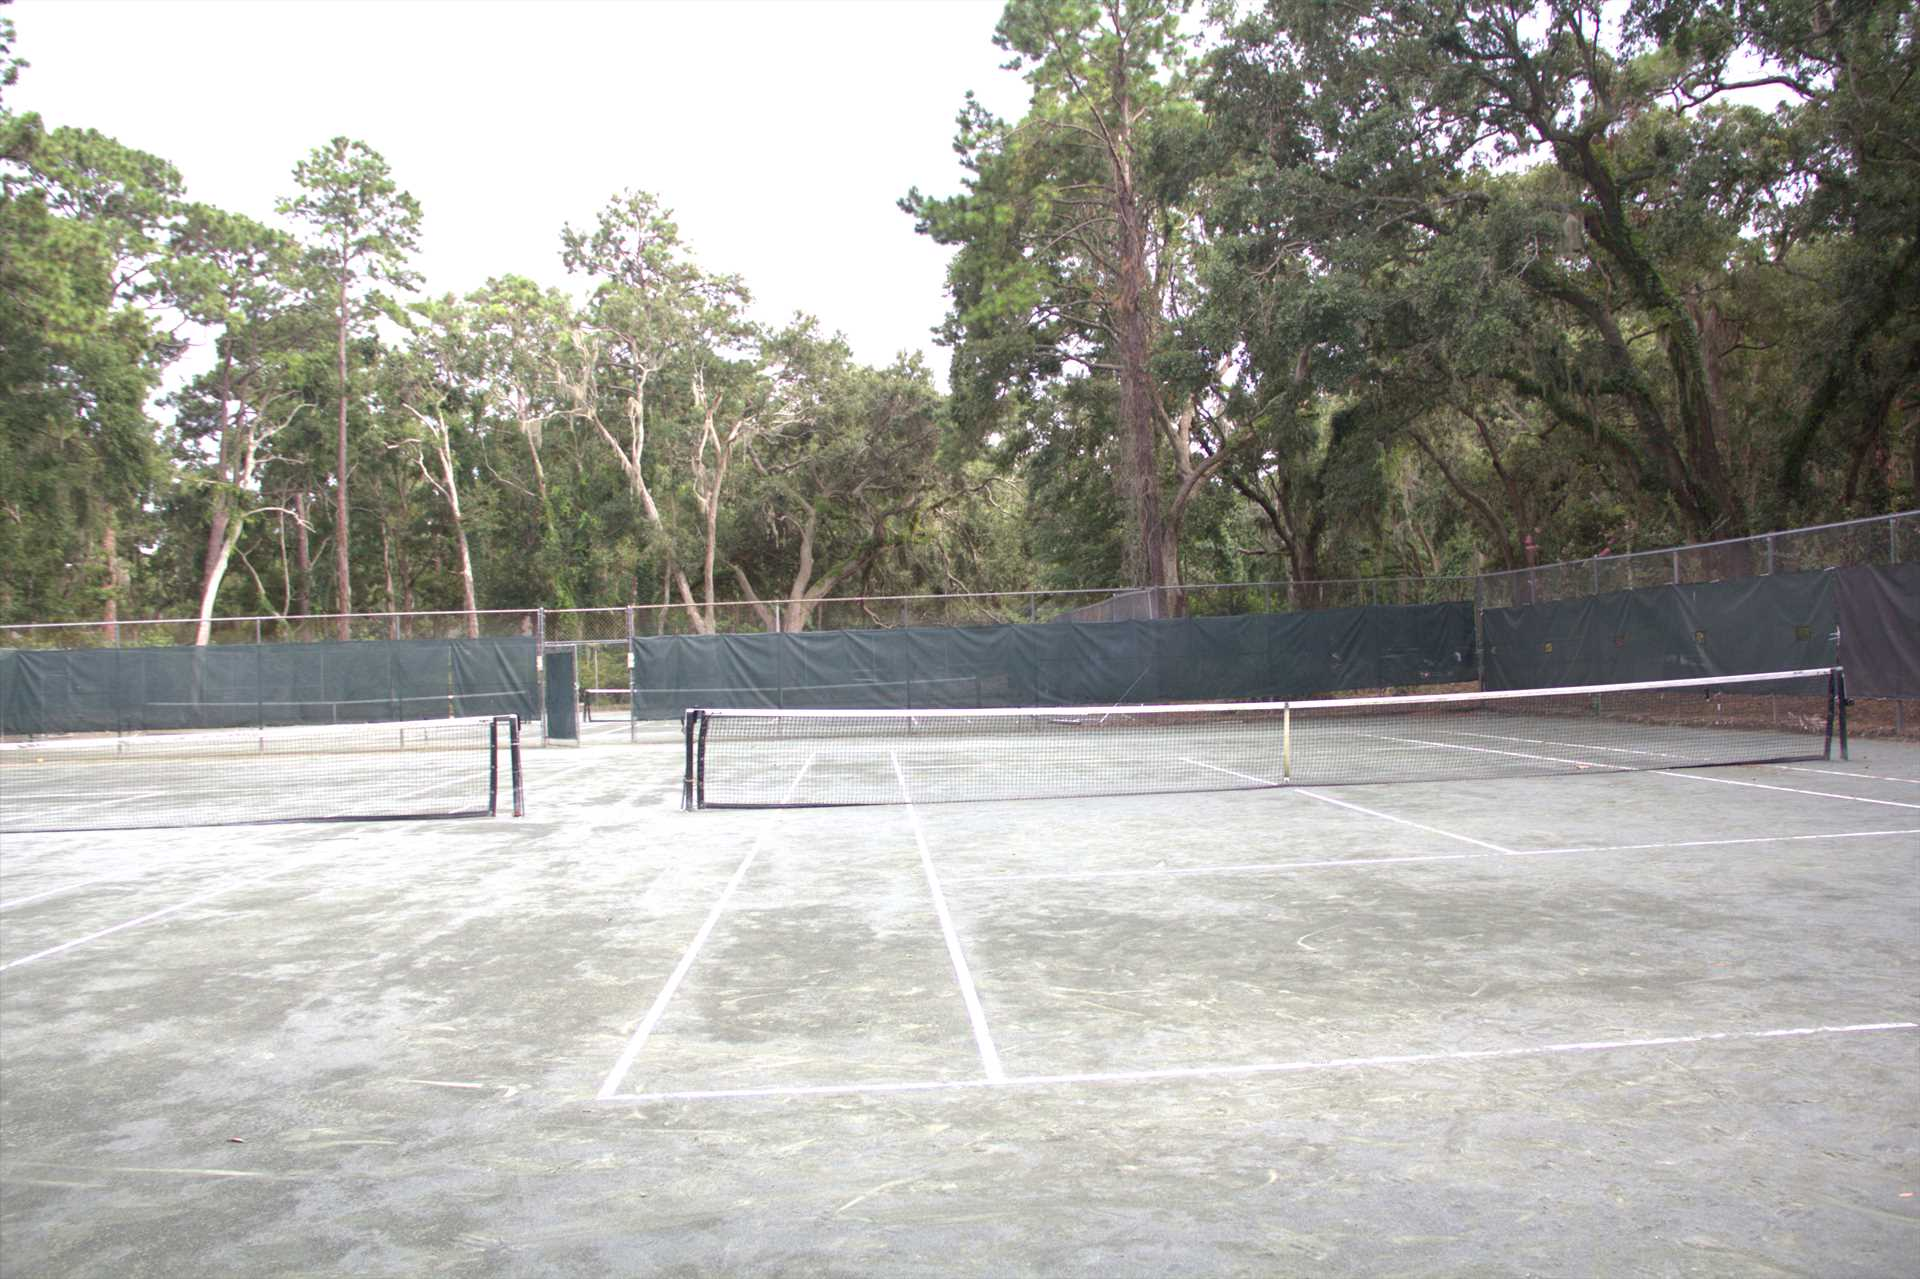 There are 4 clay tennis courts